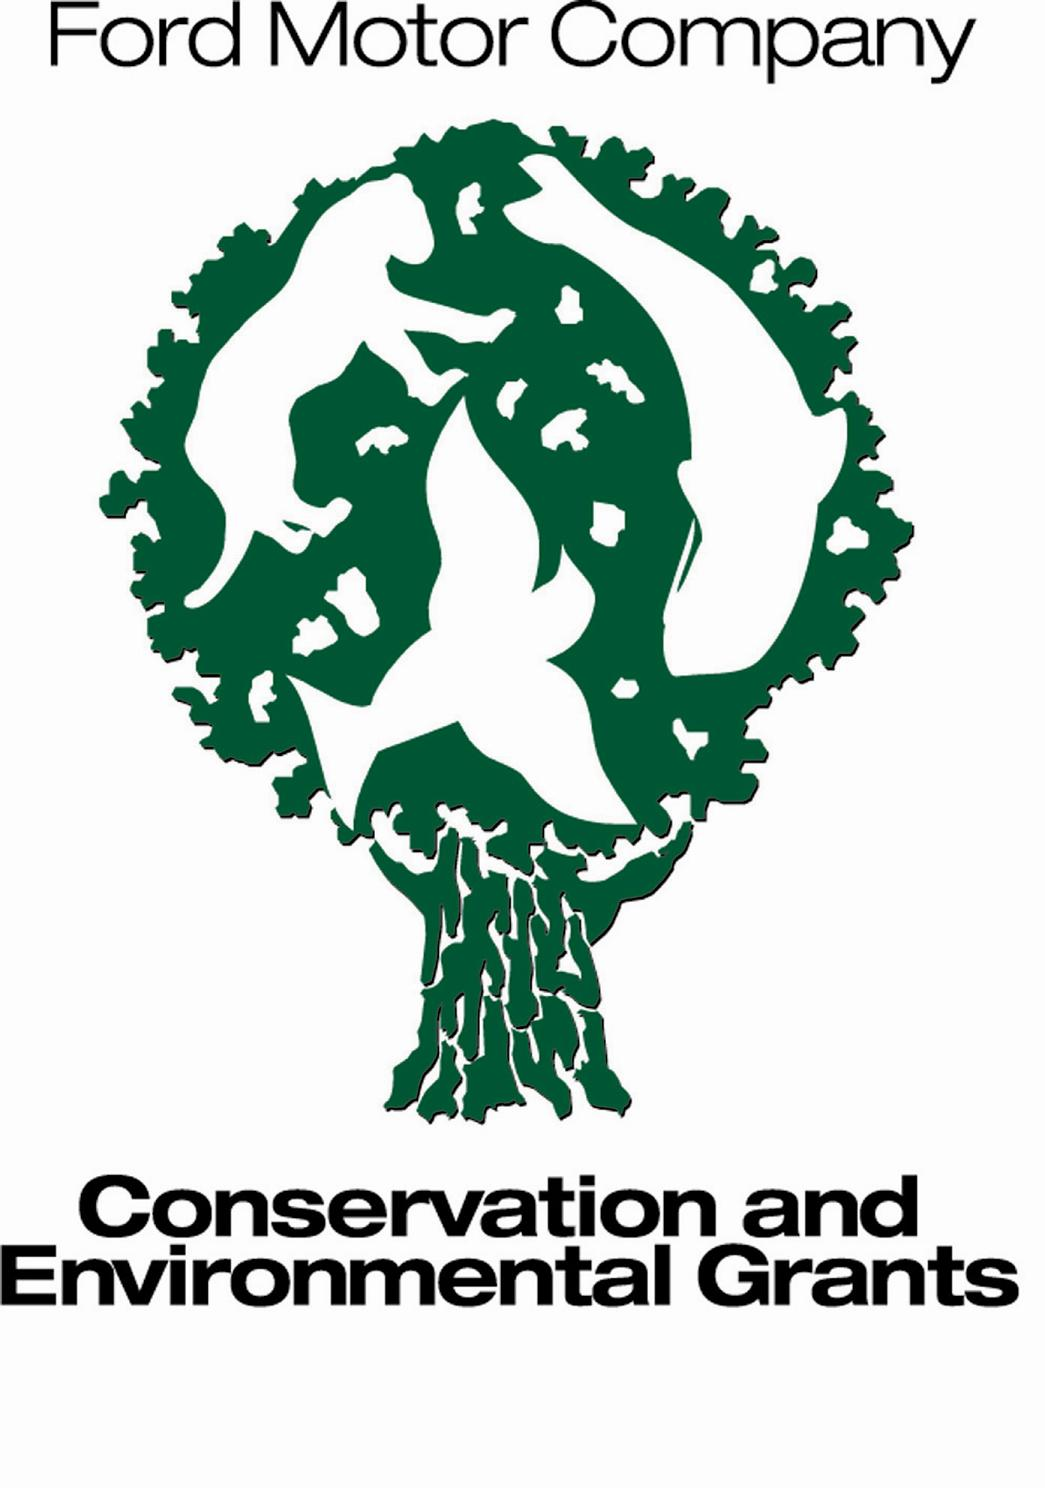 Ford_Conservation_and_Environmental_Grants_Logo_-_En